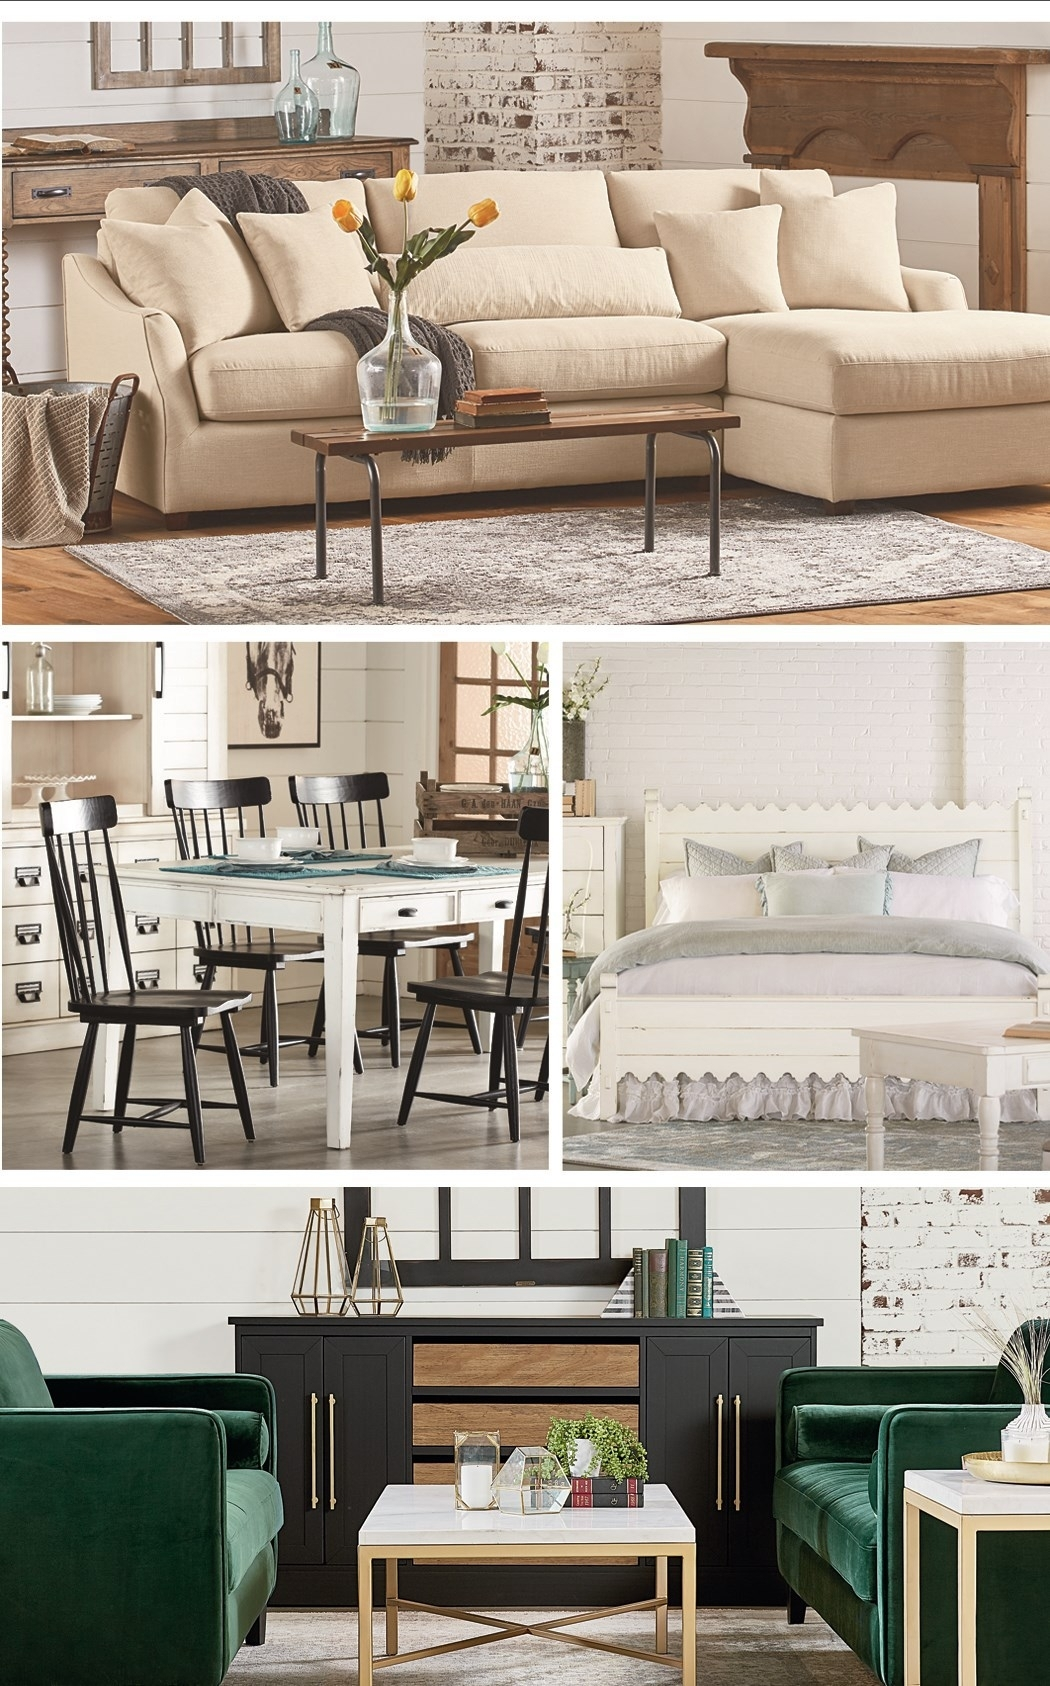 Magnolia Homejoanna Gaines | Jacksonville, Gainesville, Palm Regarding Magnolia Home Homestead 4 Piece Sectionals By Joanna Gaines (Image 22 of 25)